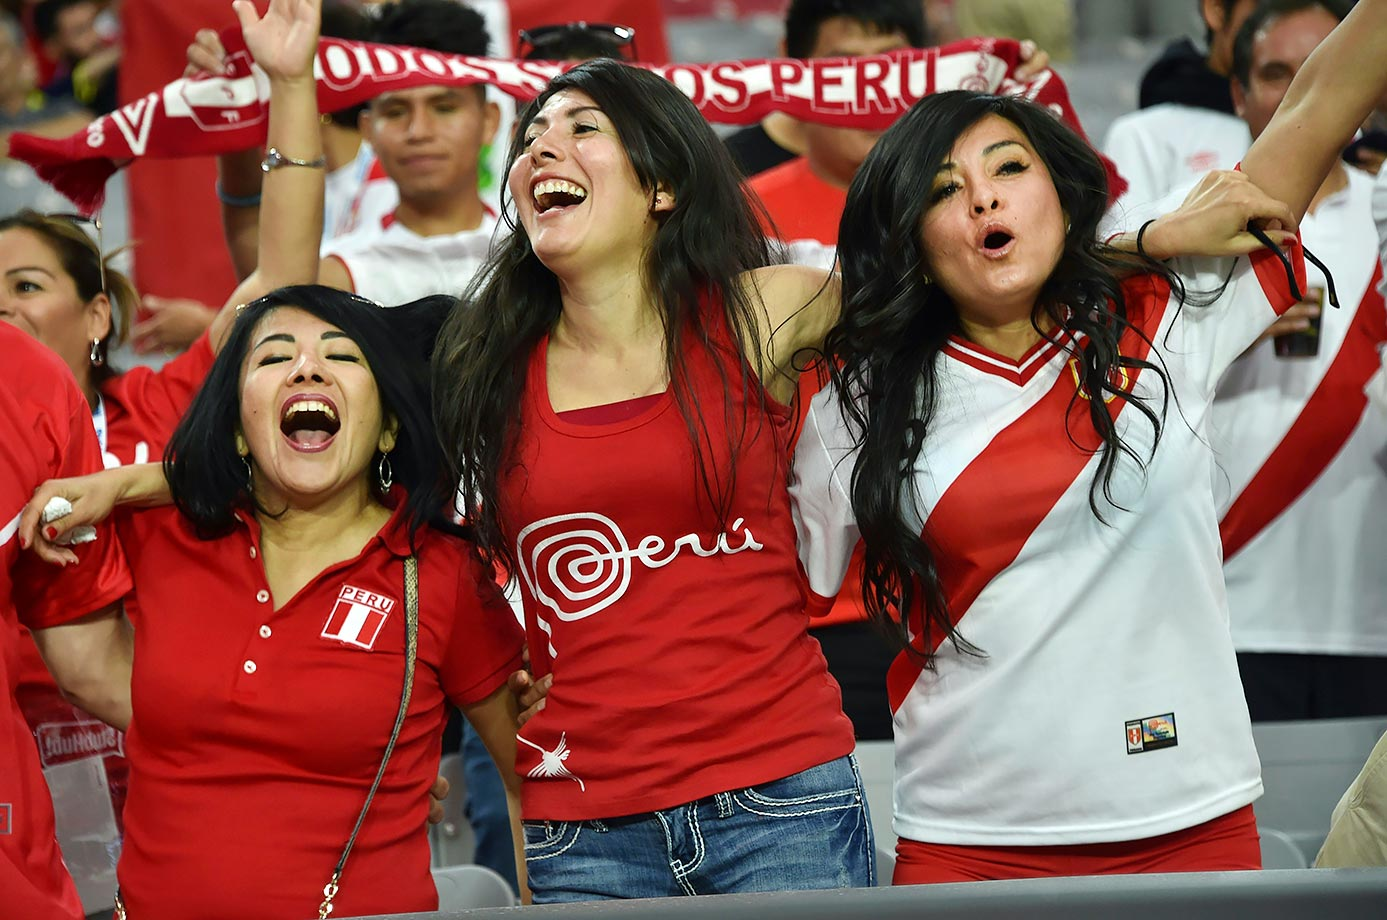 Peru football team girls cheer their nation